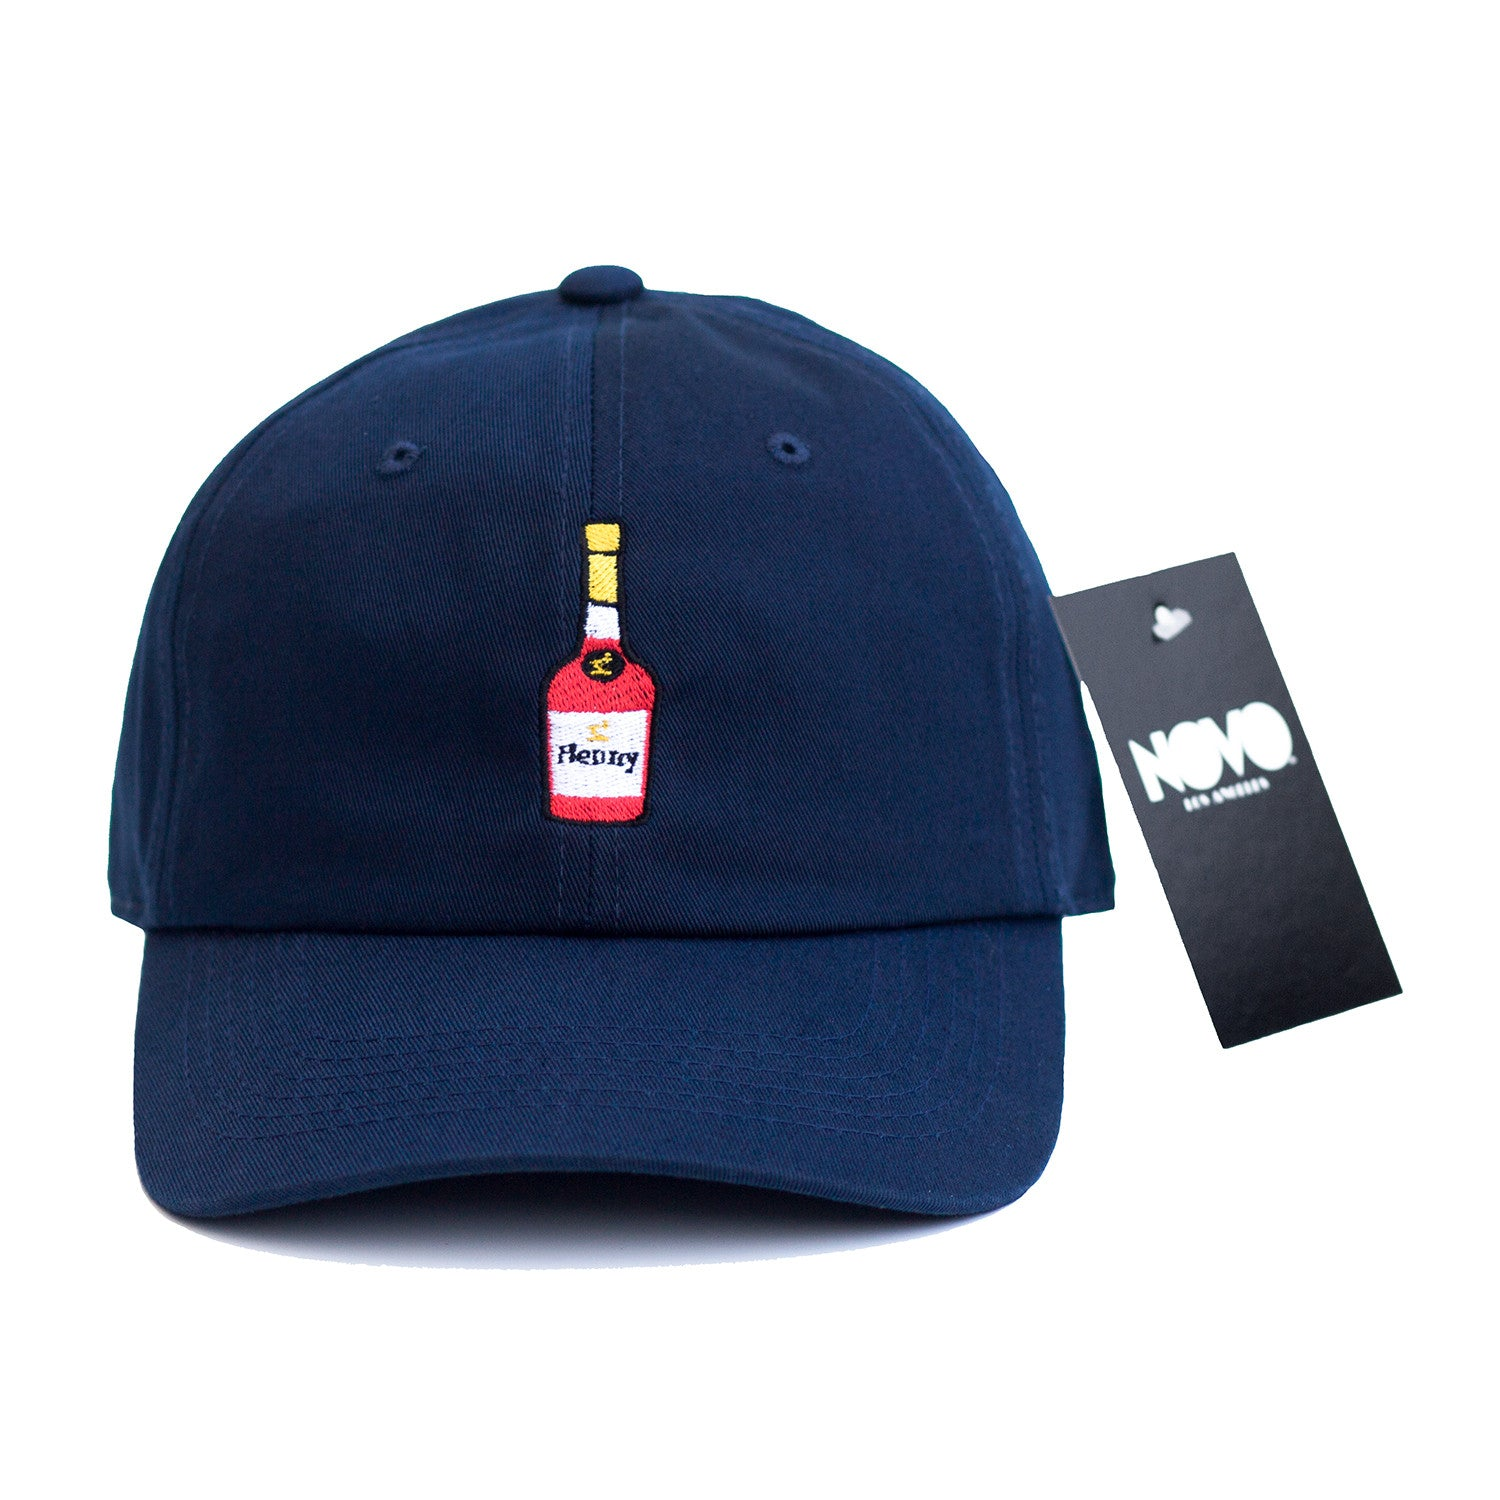 4dbb34717 Henny Dad Hat - Navy Blue In Twilled Cotton